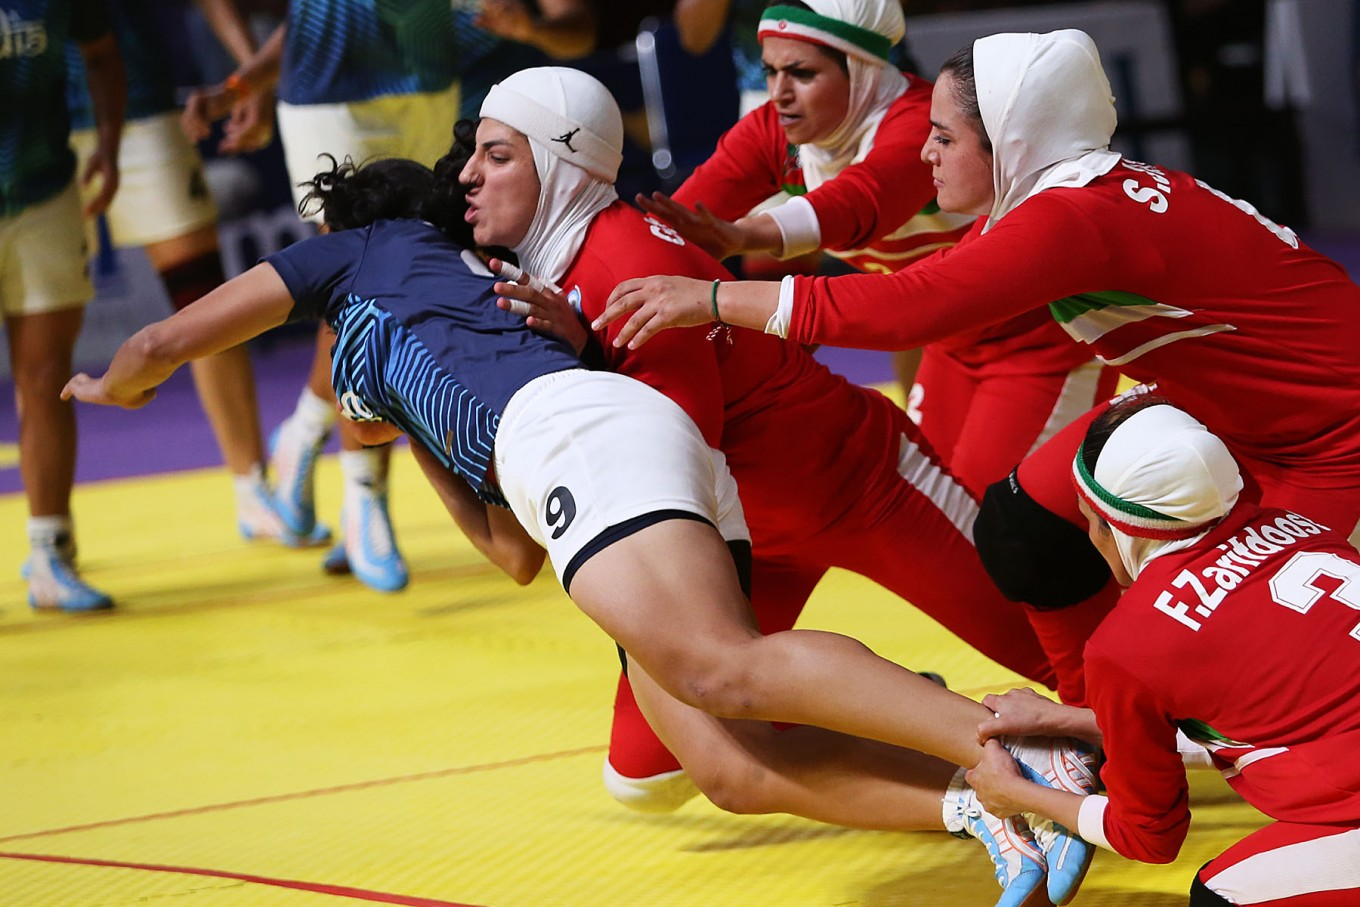 The Iranian women's team tackles an Indian athlete in the women's kabaddi final. The Iranians clinched the gold. JP/PJ Leo